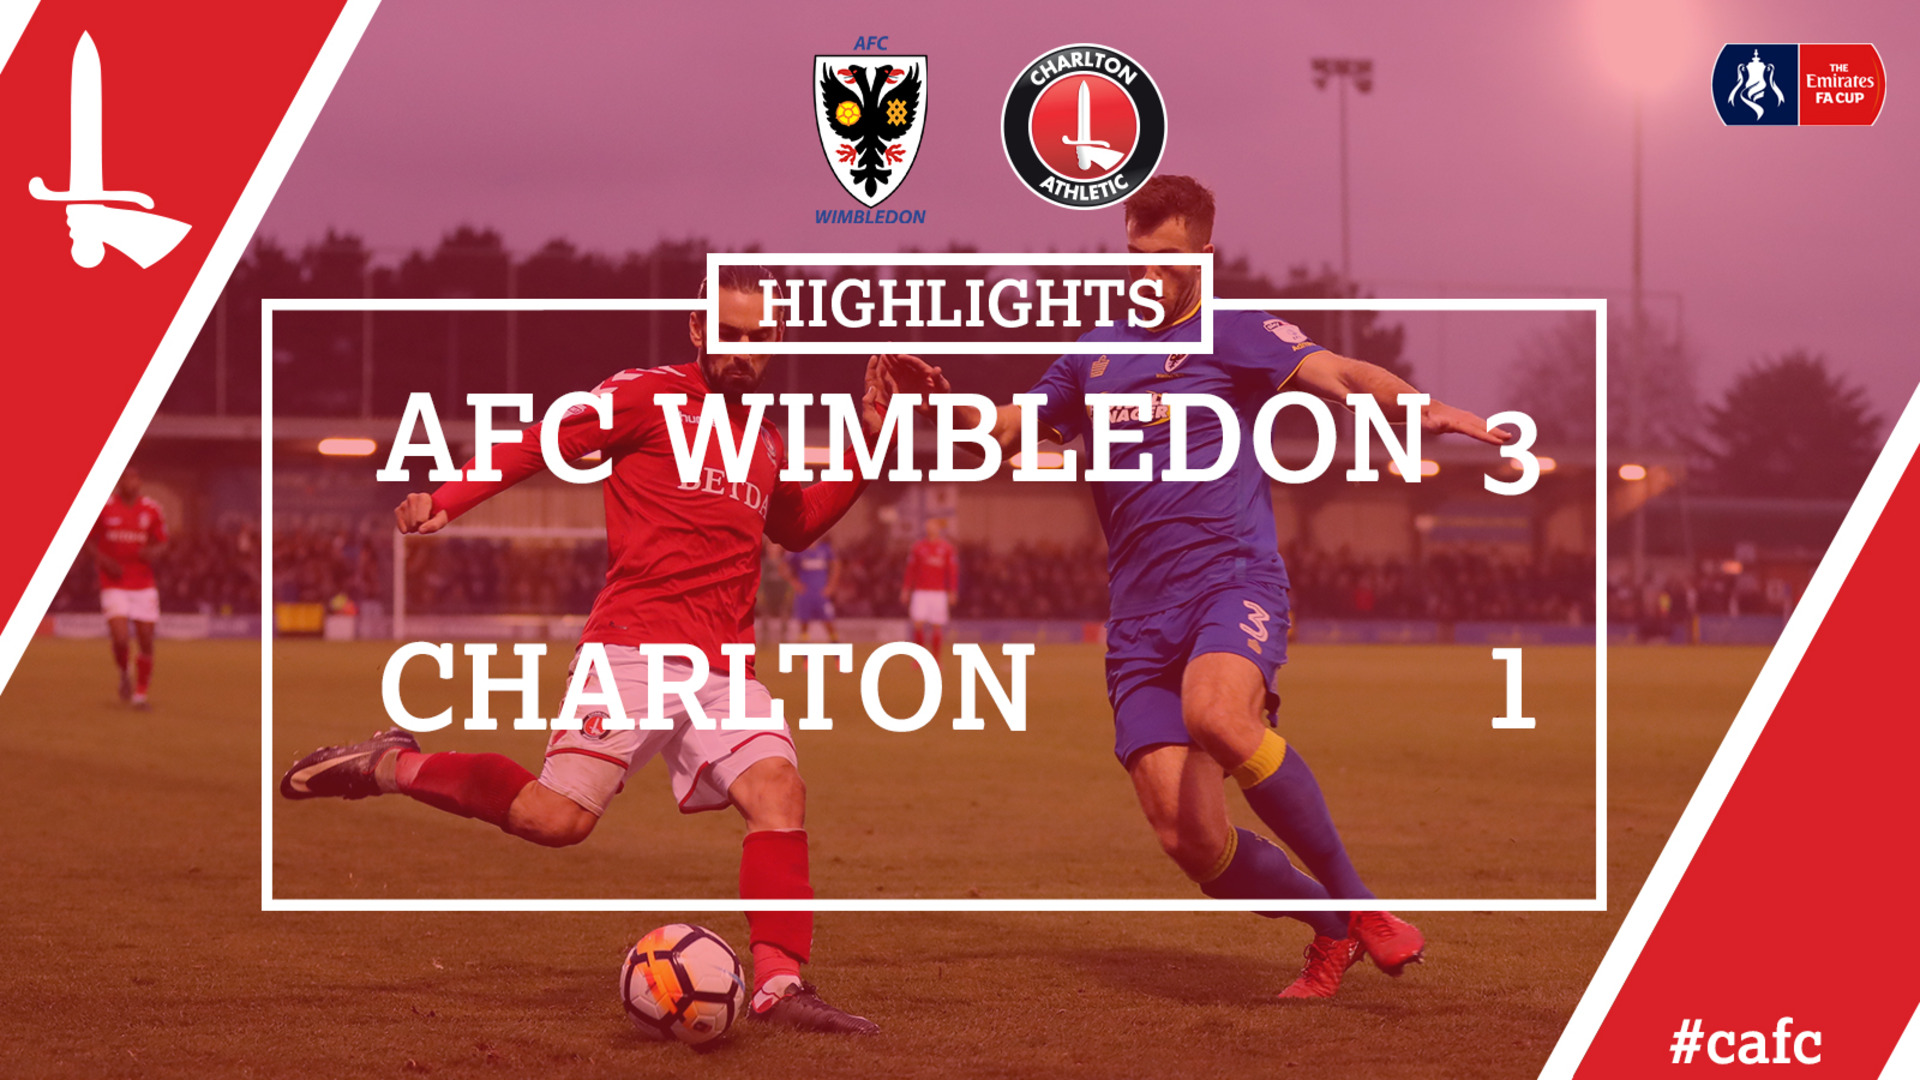 25 HIGHLIGHTS | AFC Wimbledon 3 Charlton 1 (FA Cup Dec 2017)